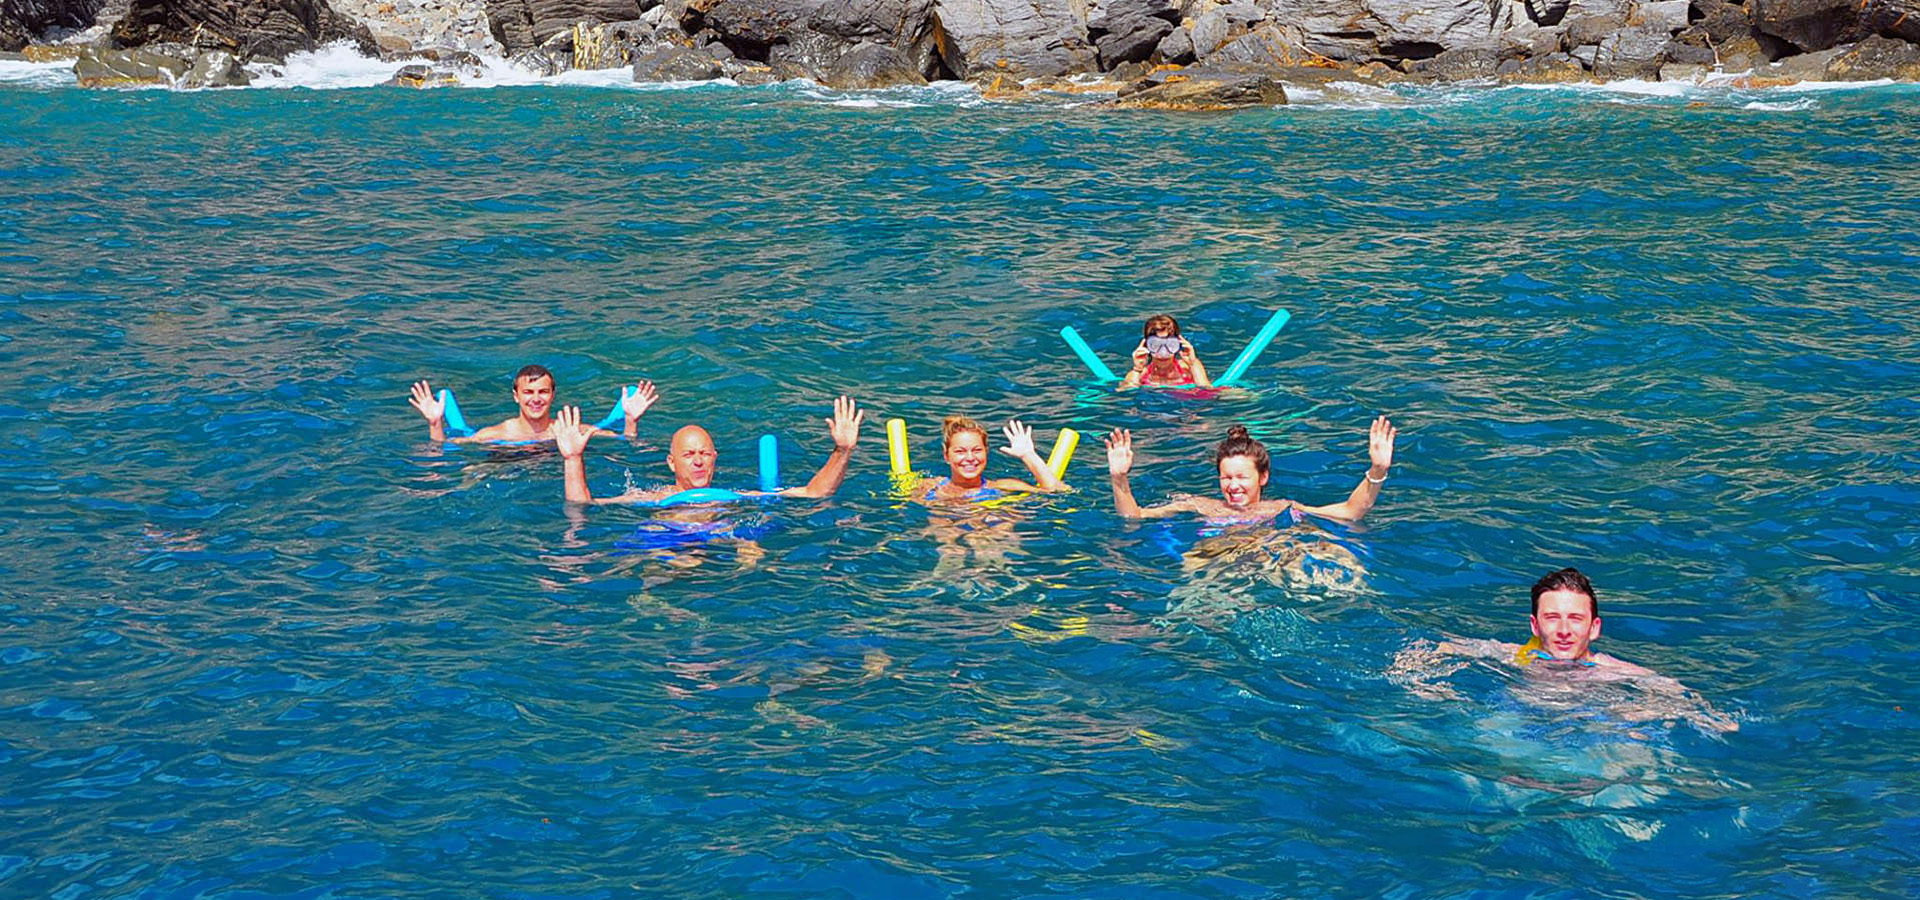 boat-tours-cinque-terre-home-5-banner.jpg